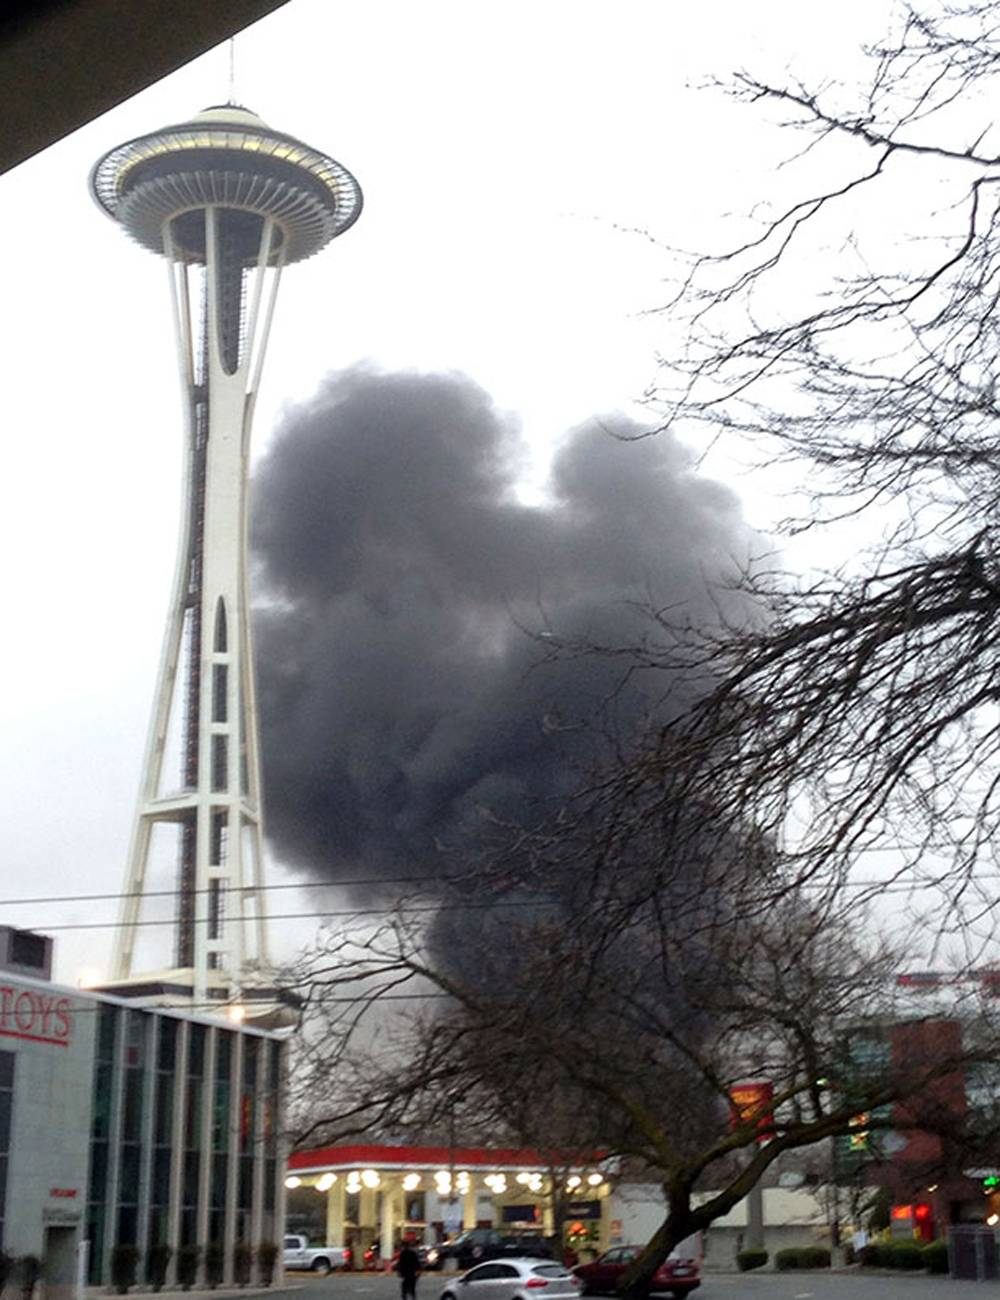 Smoke rises at the scene of a helicopter crash outside the KOMO-TV studios near the space needle in Seattle on Tuesday, March 18, 2014. The station says the helicopter was apparently coming in for a landing on its rooftop Tuesday morning when it possibly hit the side of the building and went down, hitting several vehicles on Broad Street.